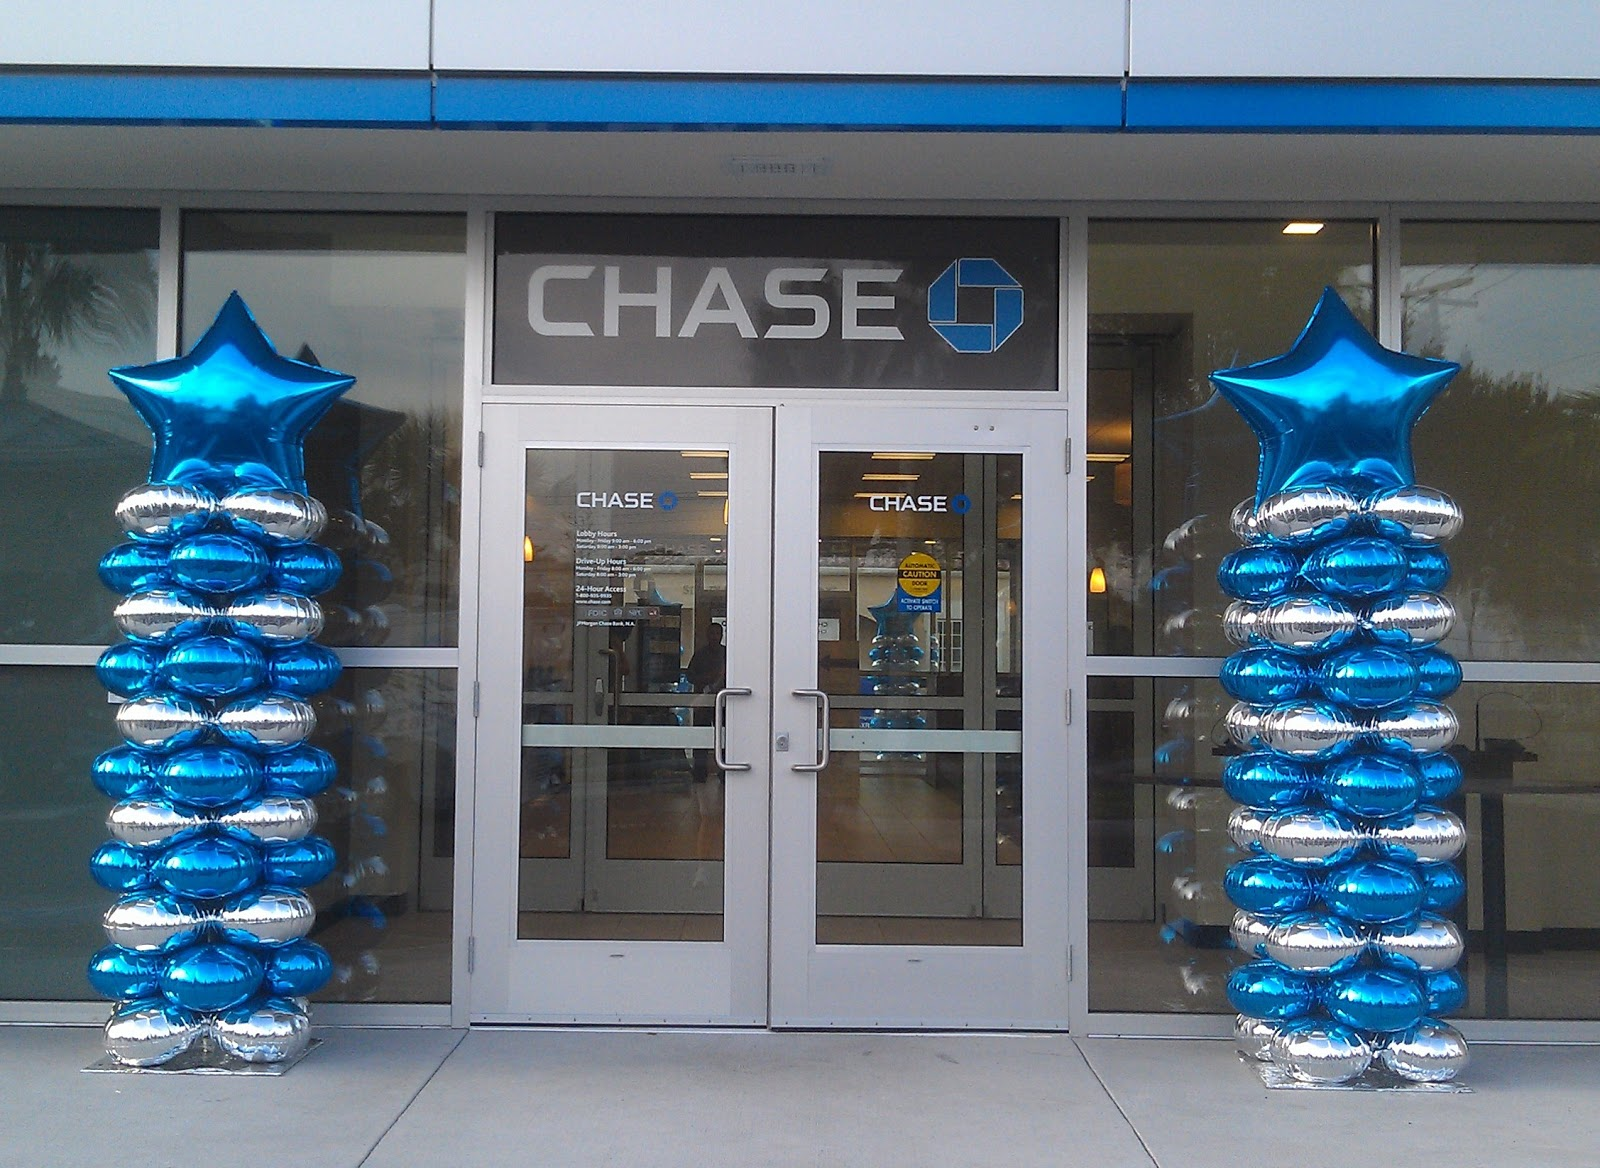 Party people event decorating company chase bank tampa